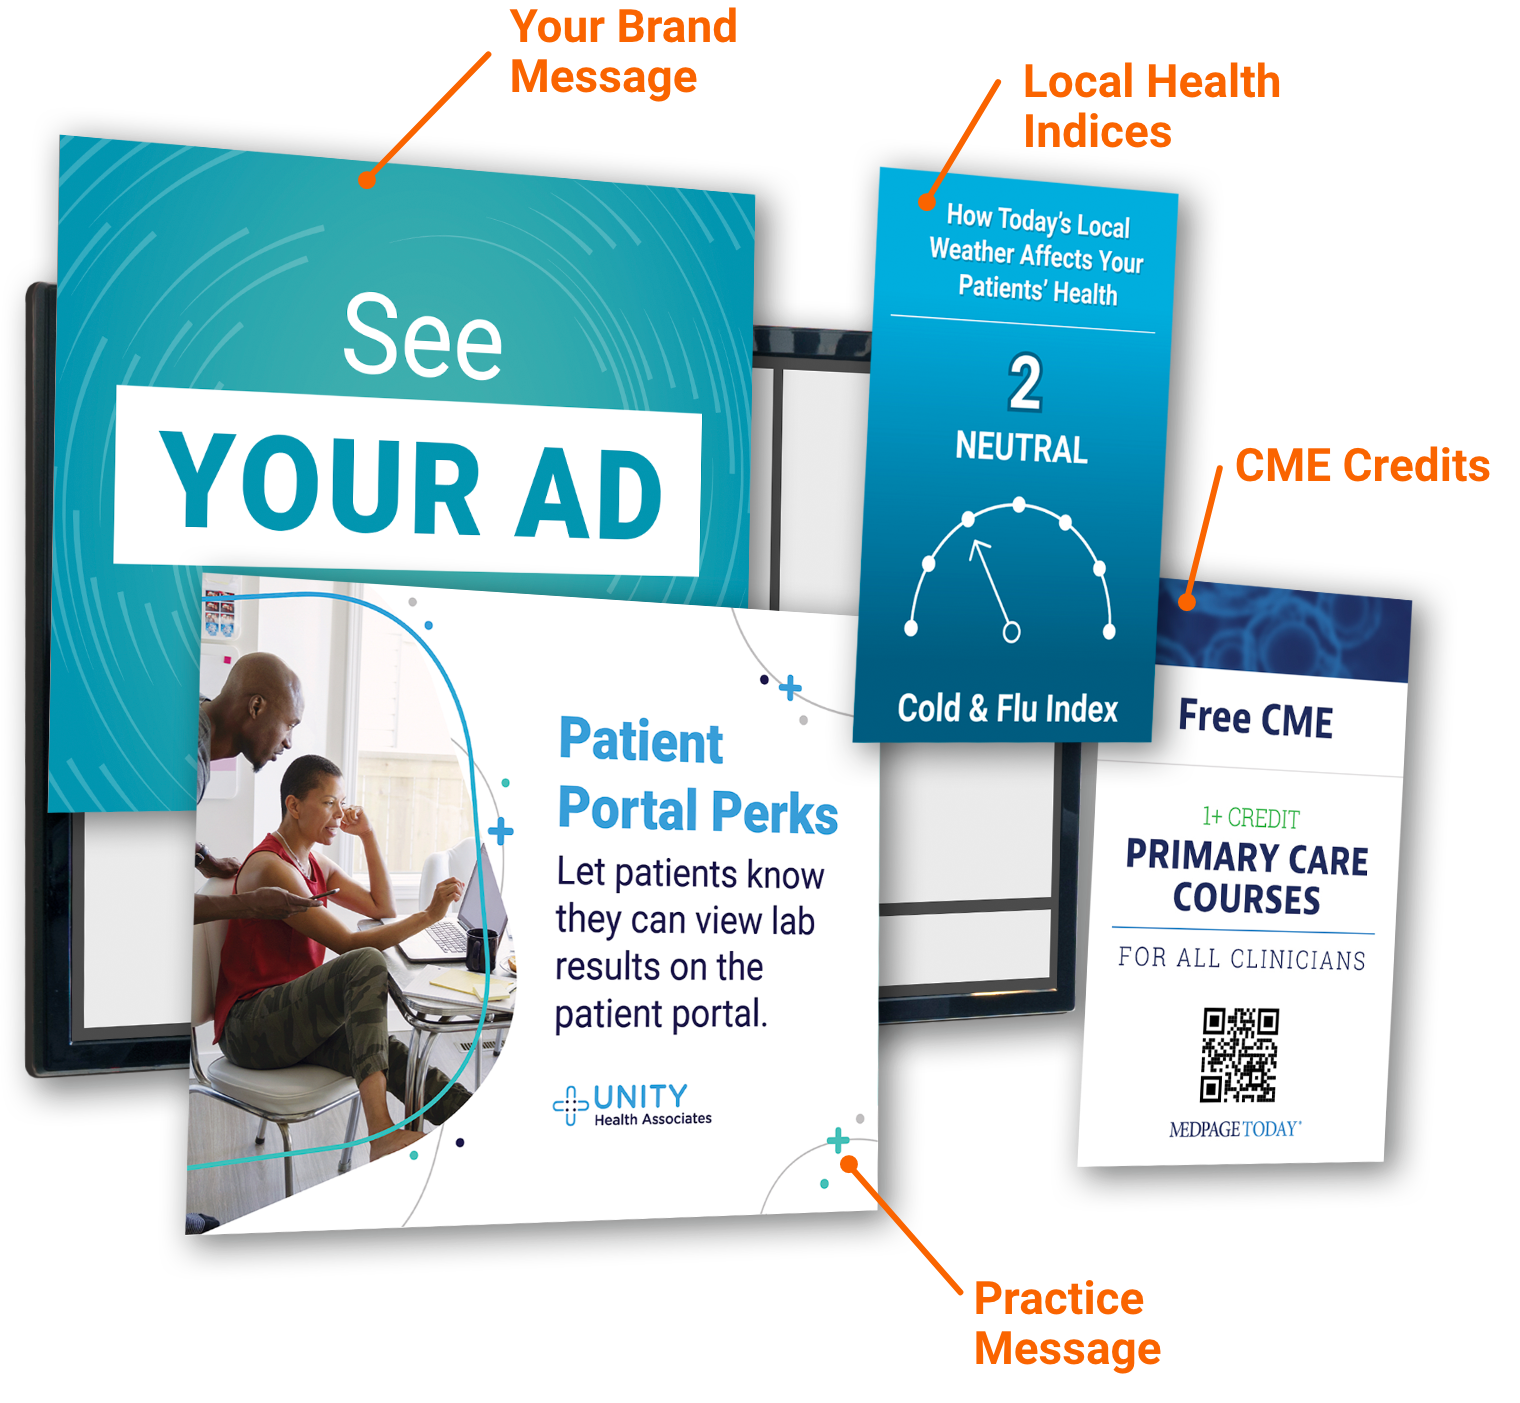 Physician office digital screen showing a message from the practice, infographic and pharma marketing.